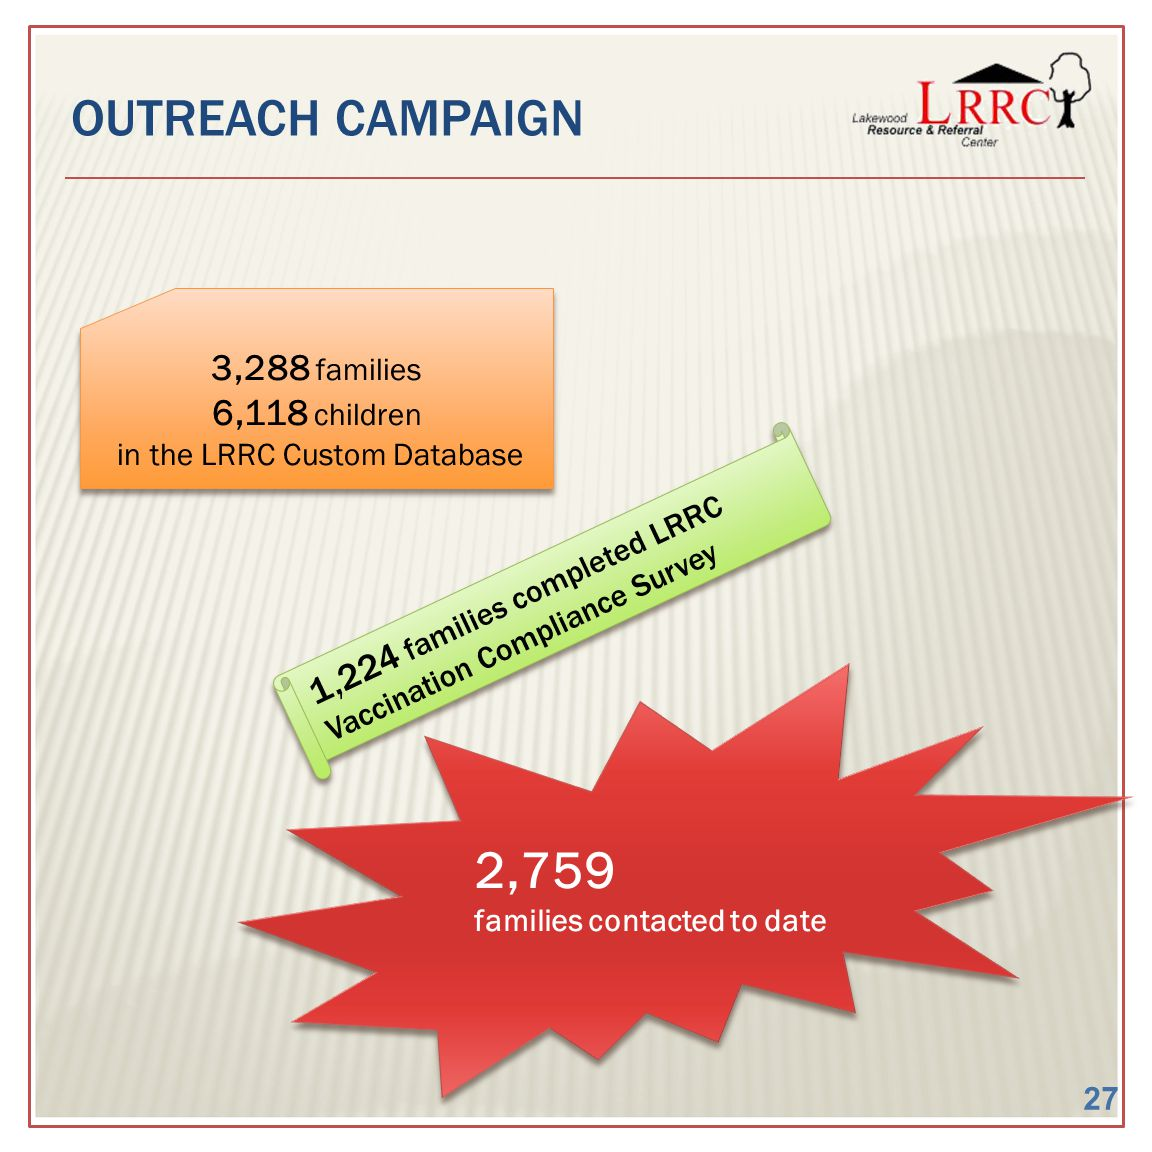 OUTREACH CAMPAIGN 1,224 families completed LRRC Vaccination Compliance Survey 2,759 families contacted to date 2,759 families contacted to date 3,288